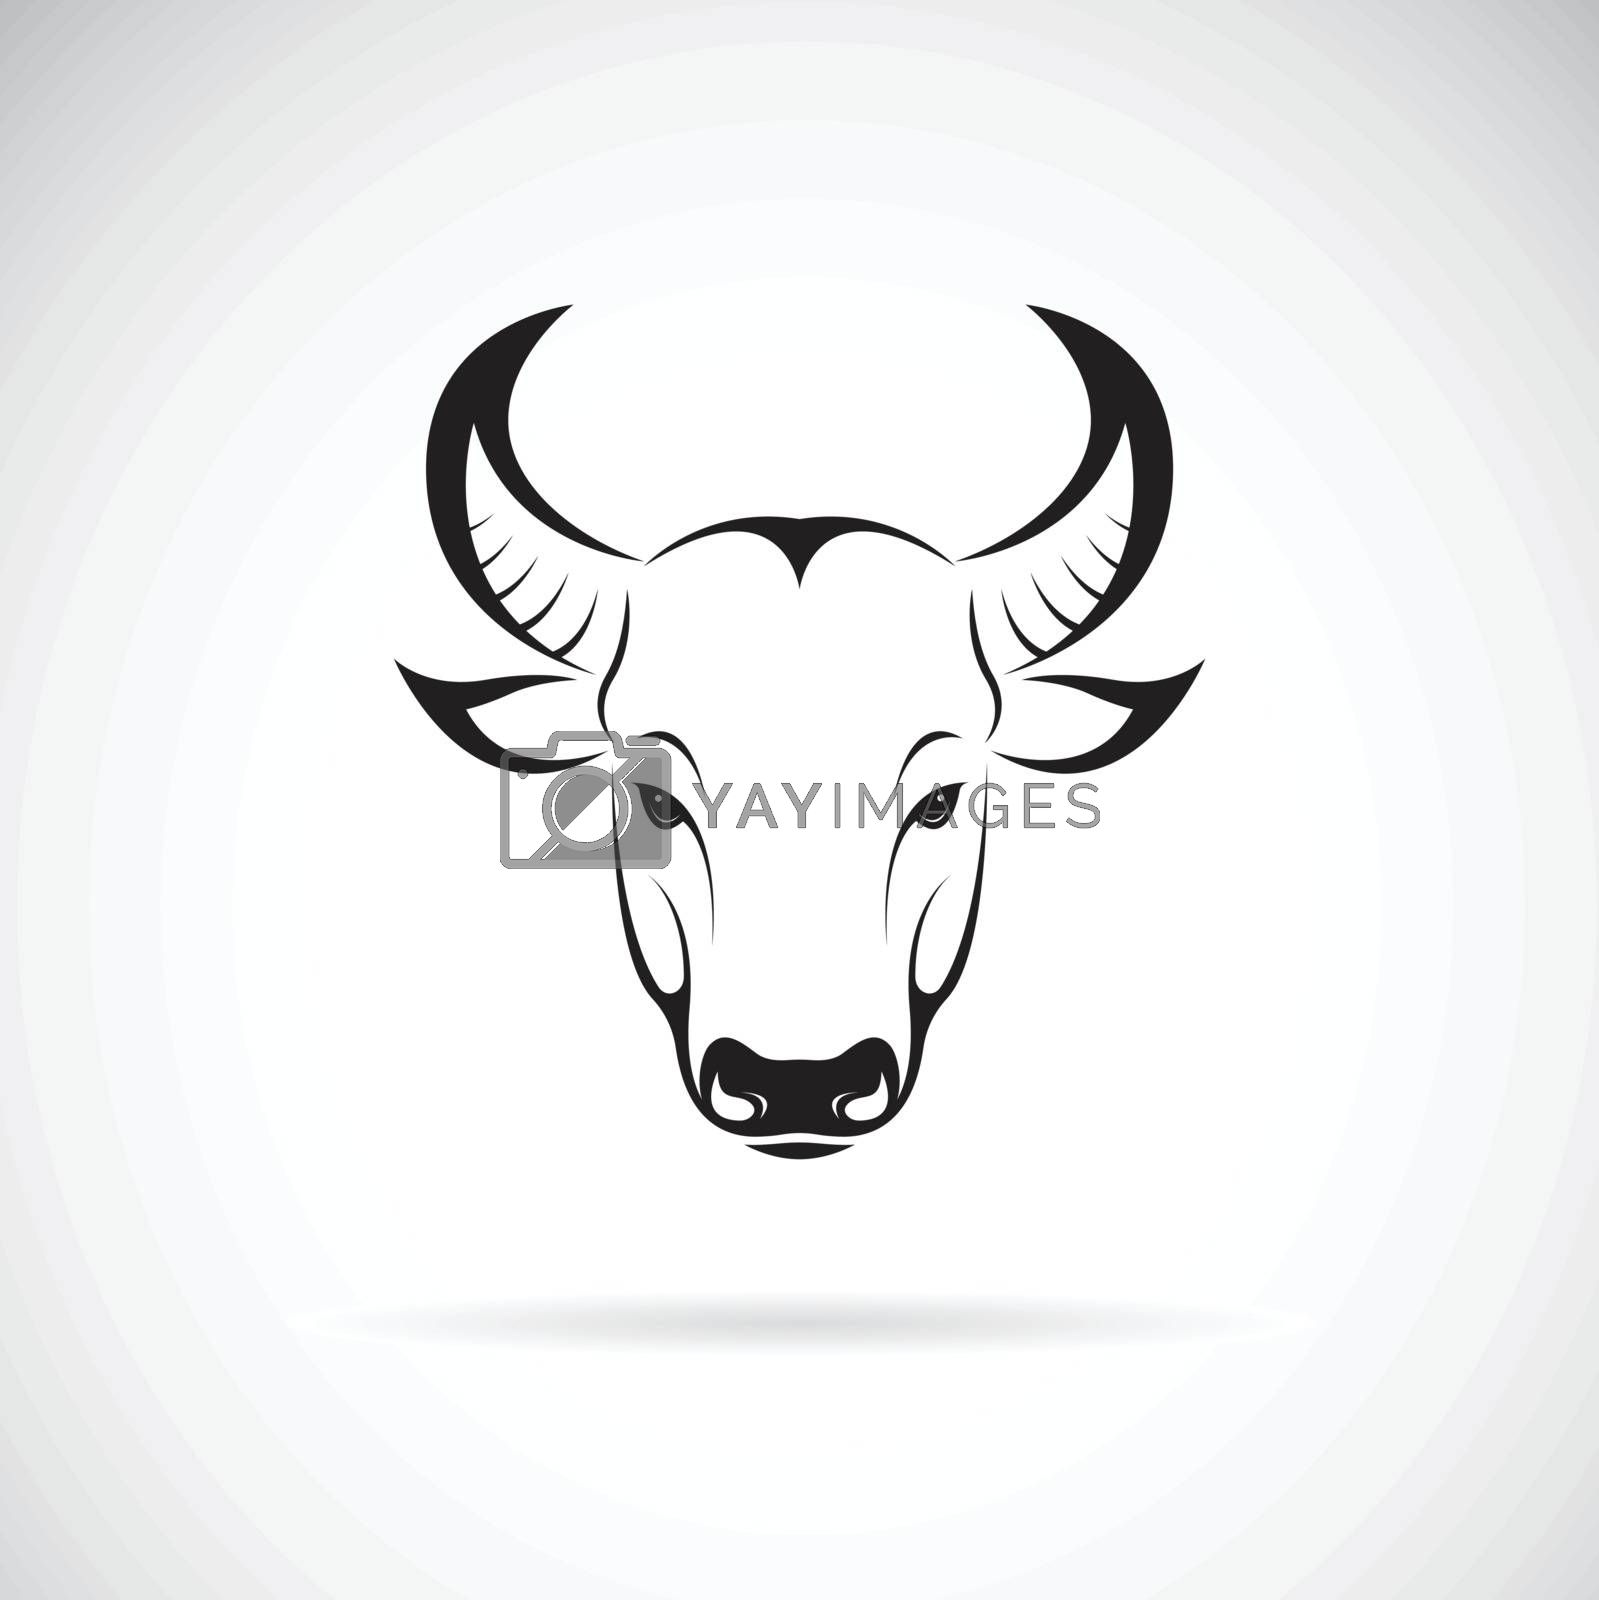 Vector of a bull head design on white background. Wild Animals. Easy editable layered vector illustration.